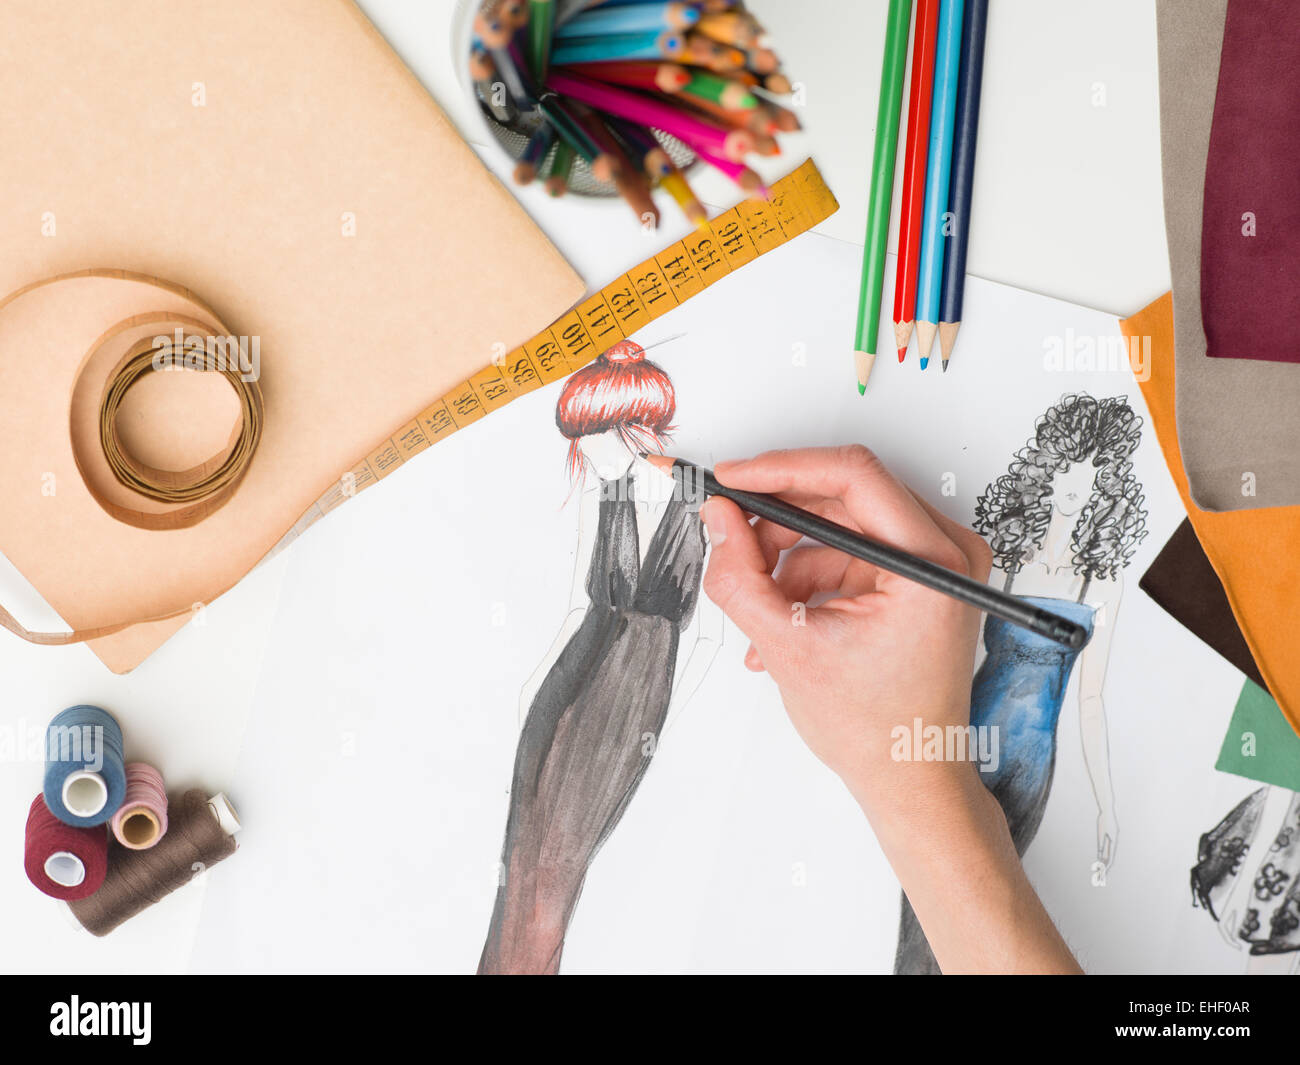 female hand drawing fashion sketch on desk with designing equipment - Stock Image